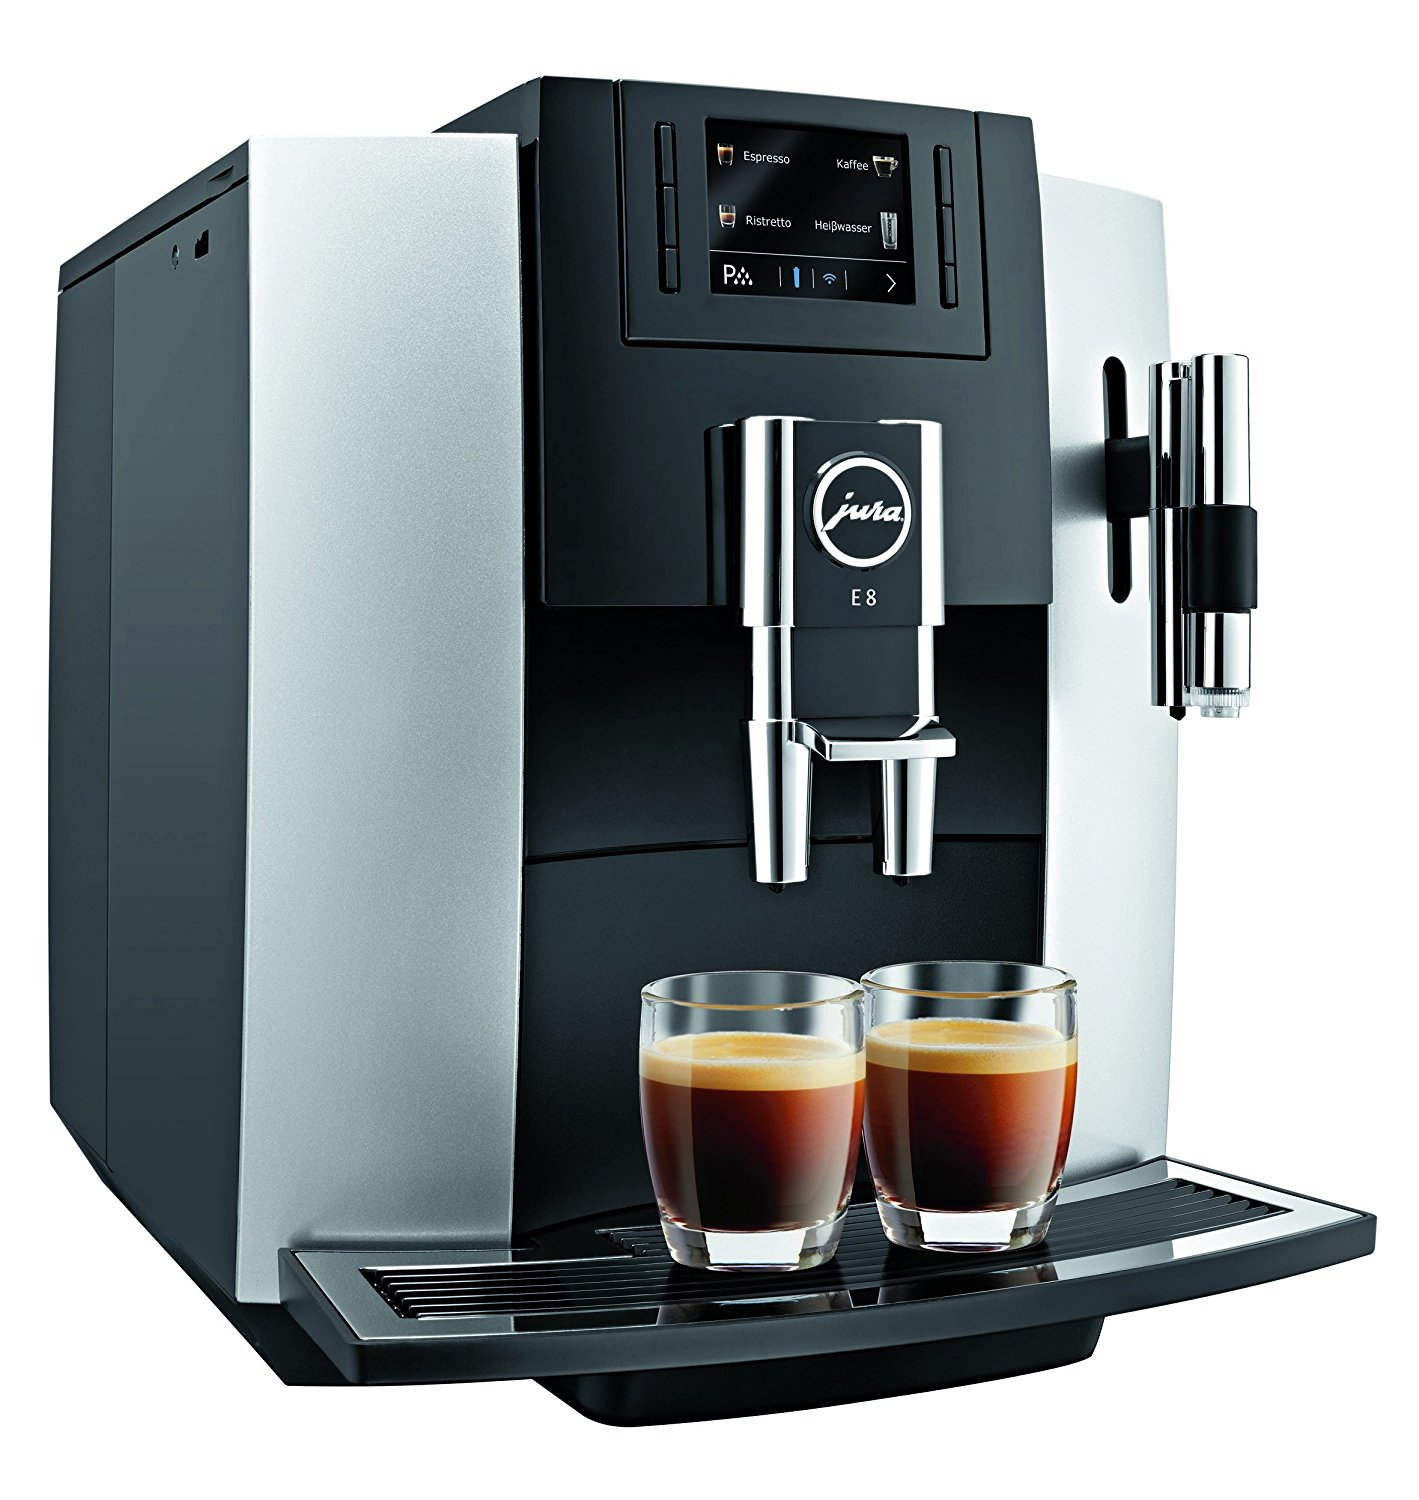 jura e8 test aroma kaffeevollautomat. Black Bedroom Furniture Sets. Home Design Ideas